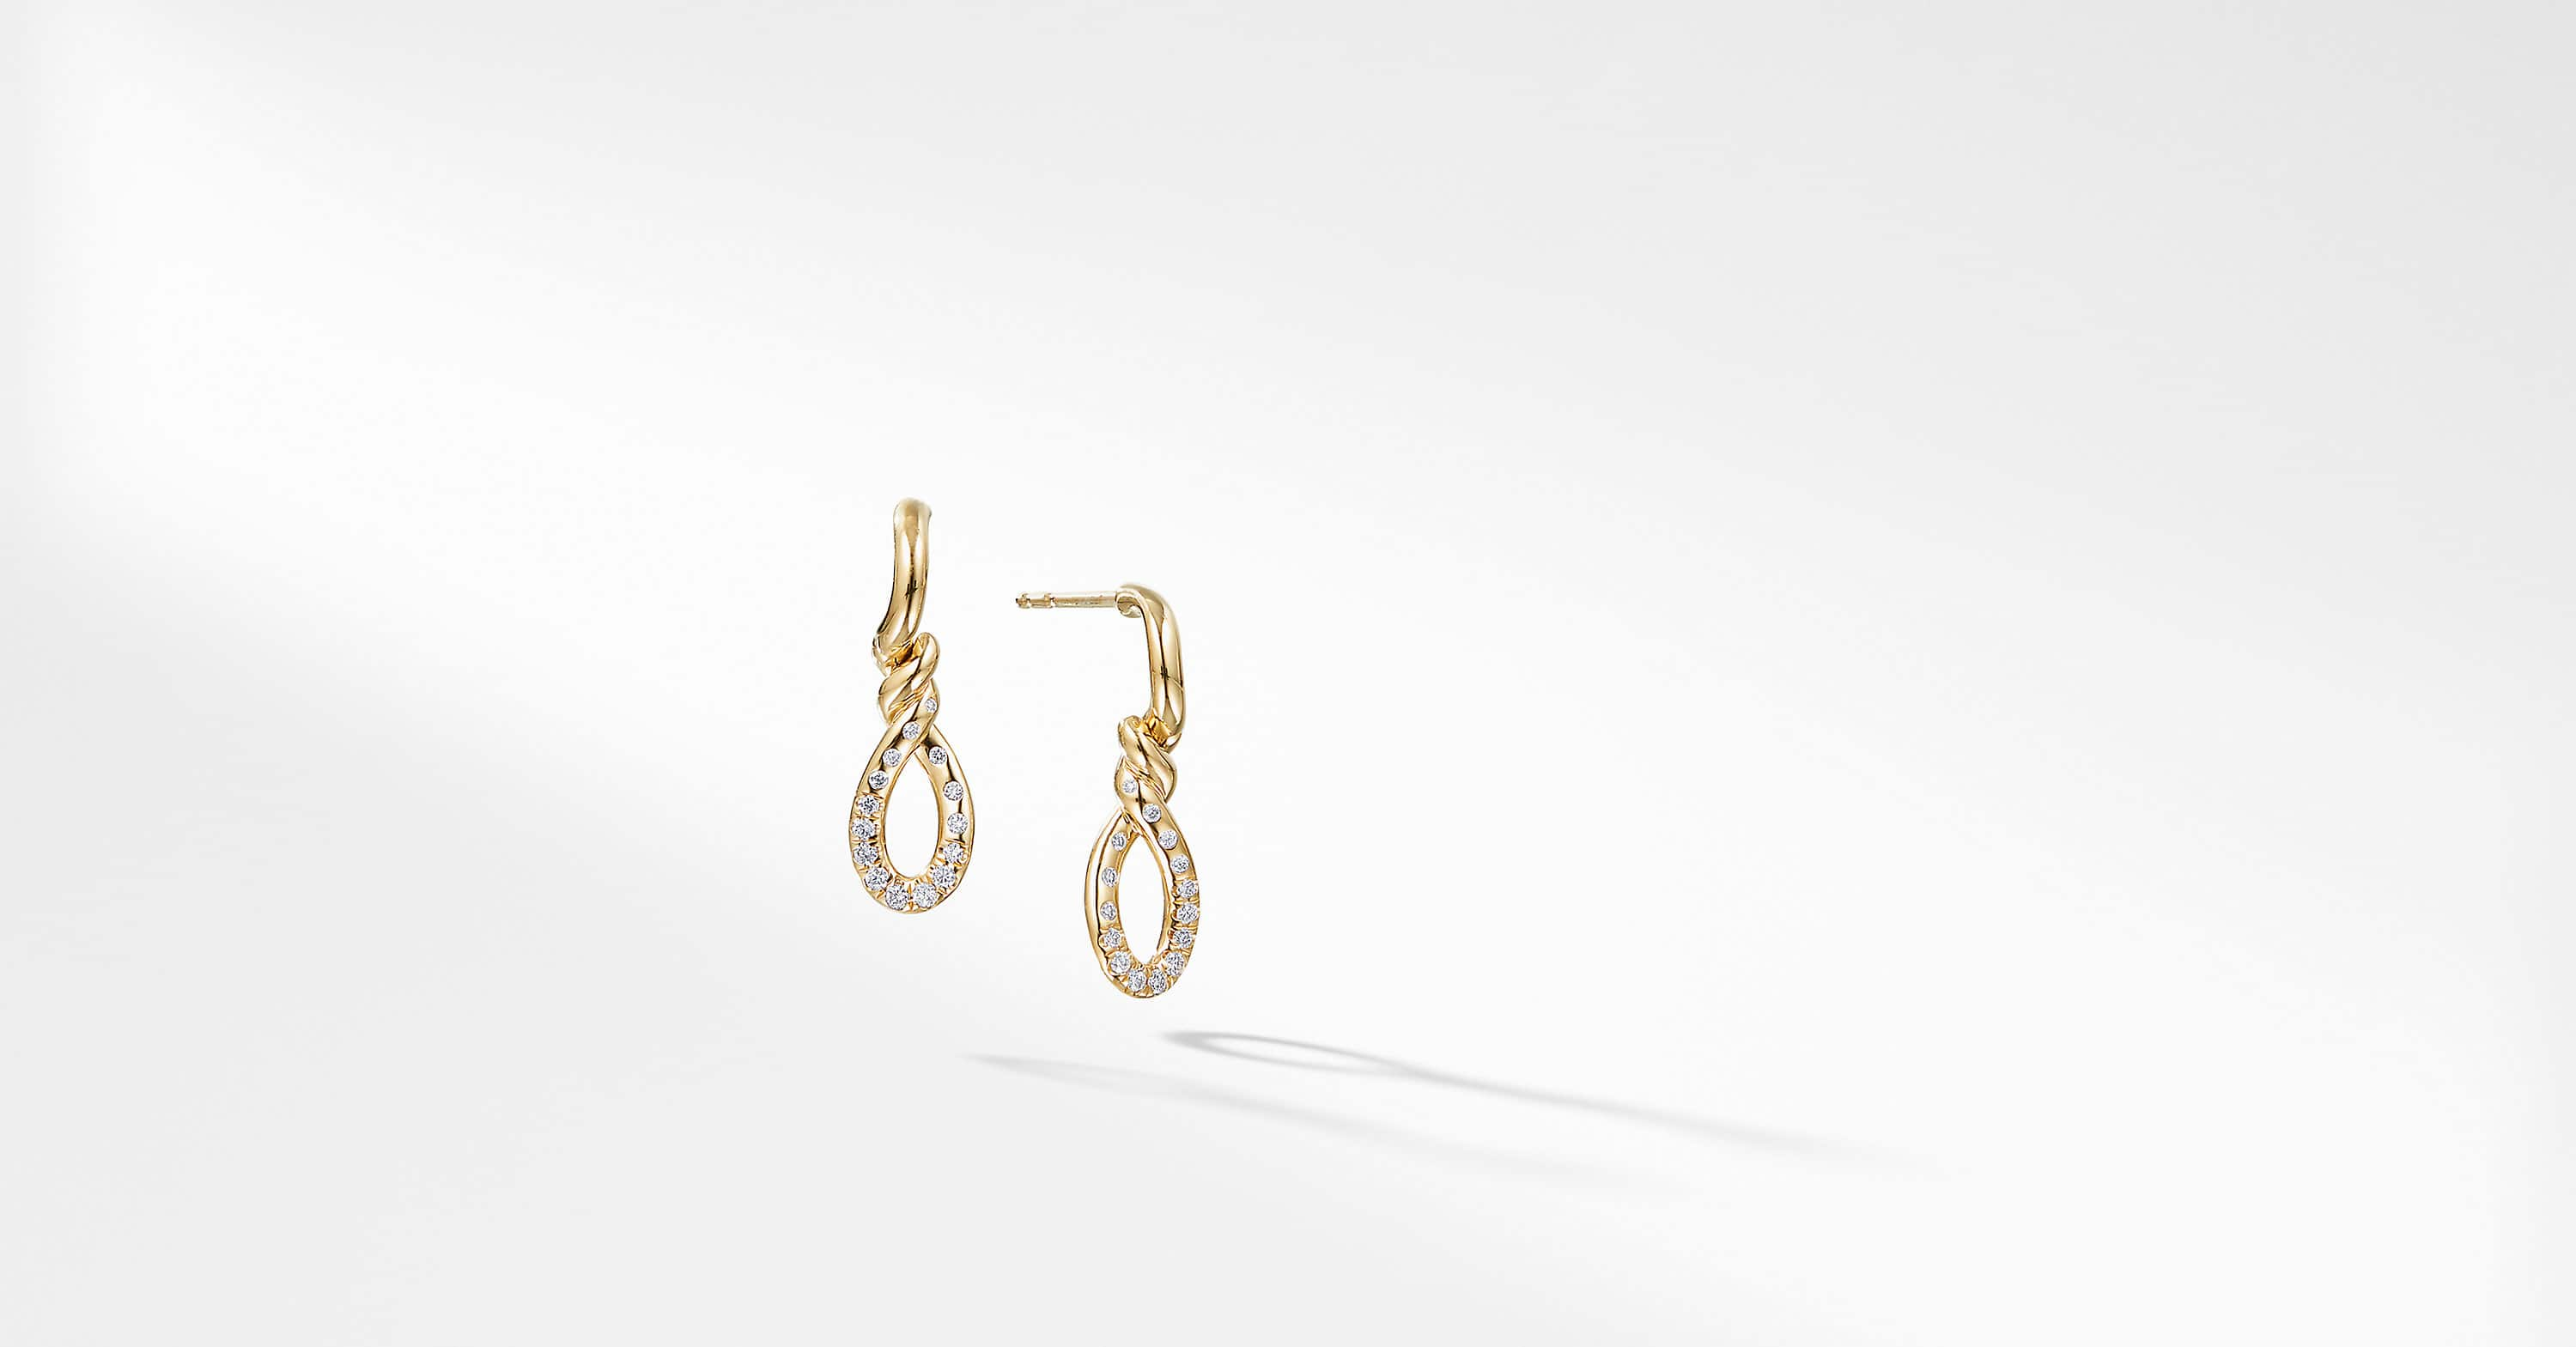 Continuance Small Drop Earrings with Diamonds in 18K Gold